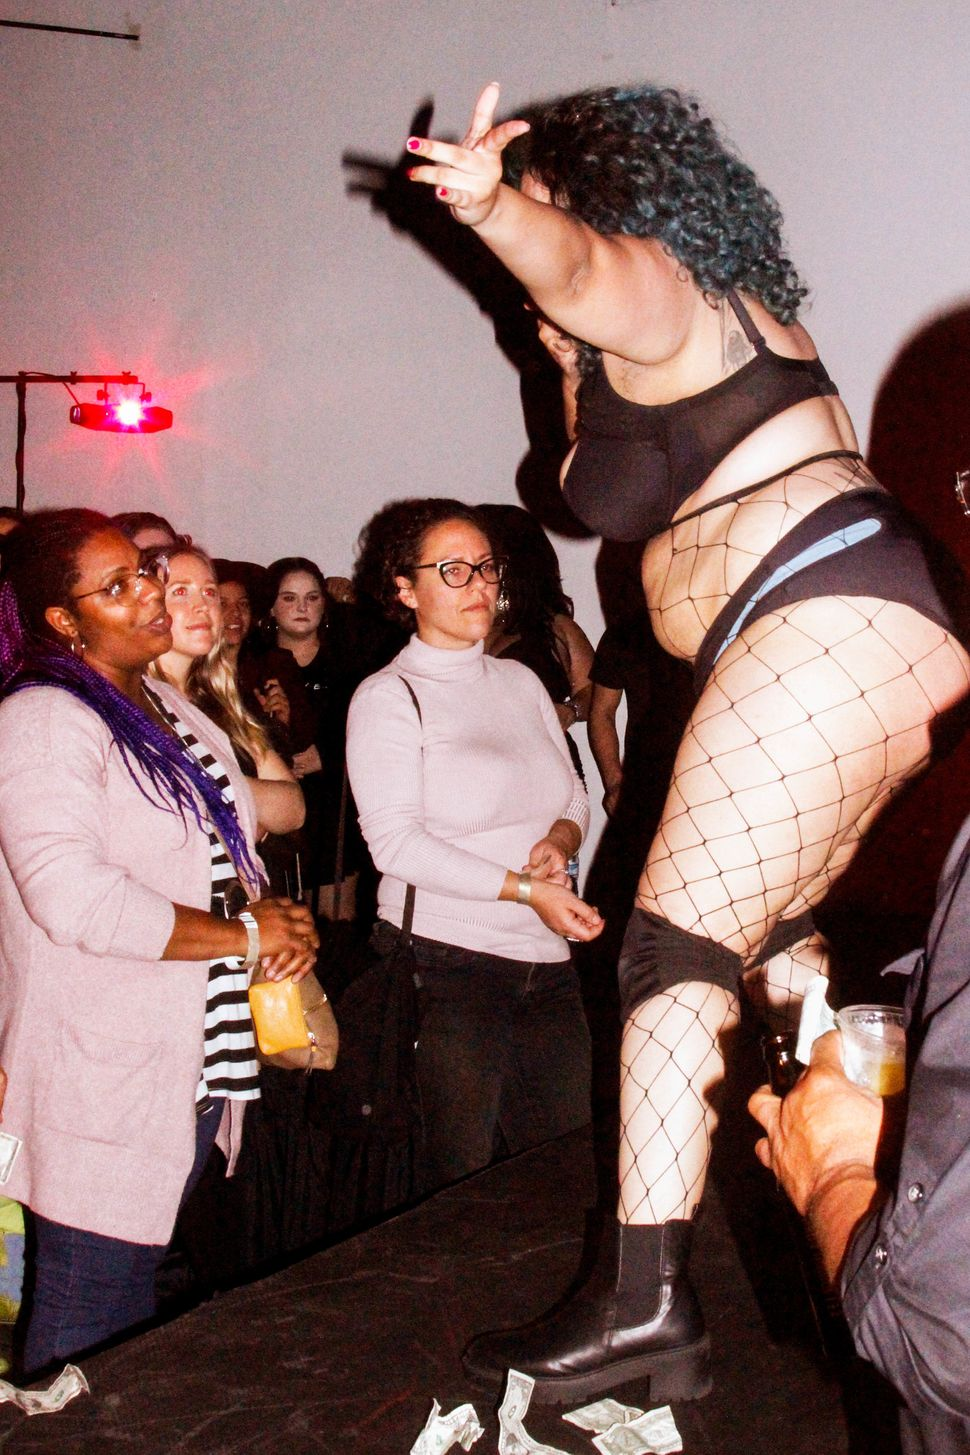 Vanessa Gritton dances for her audience during Thicc Strip.